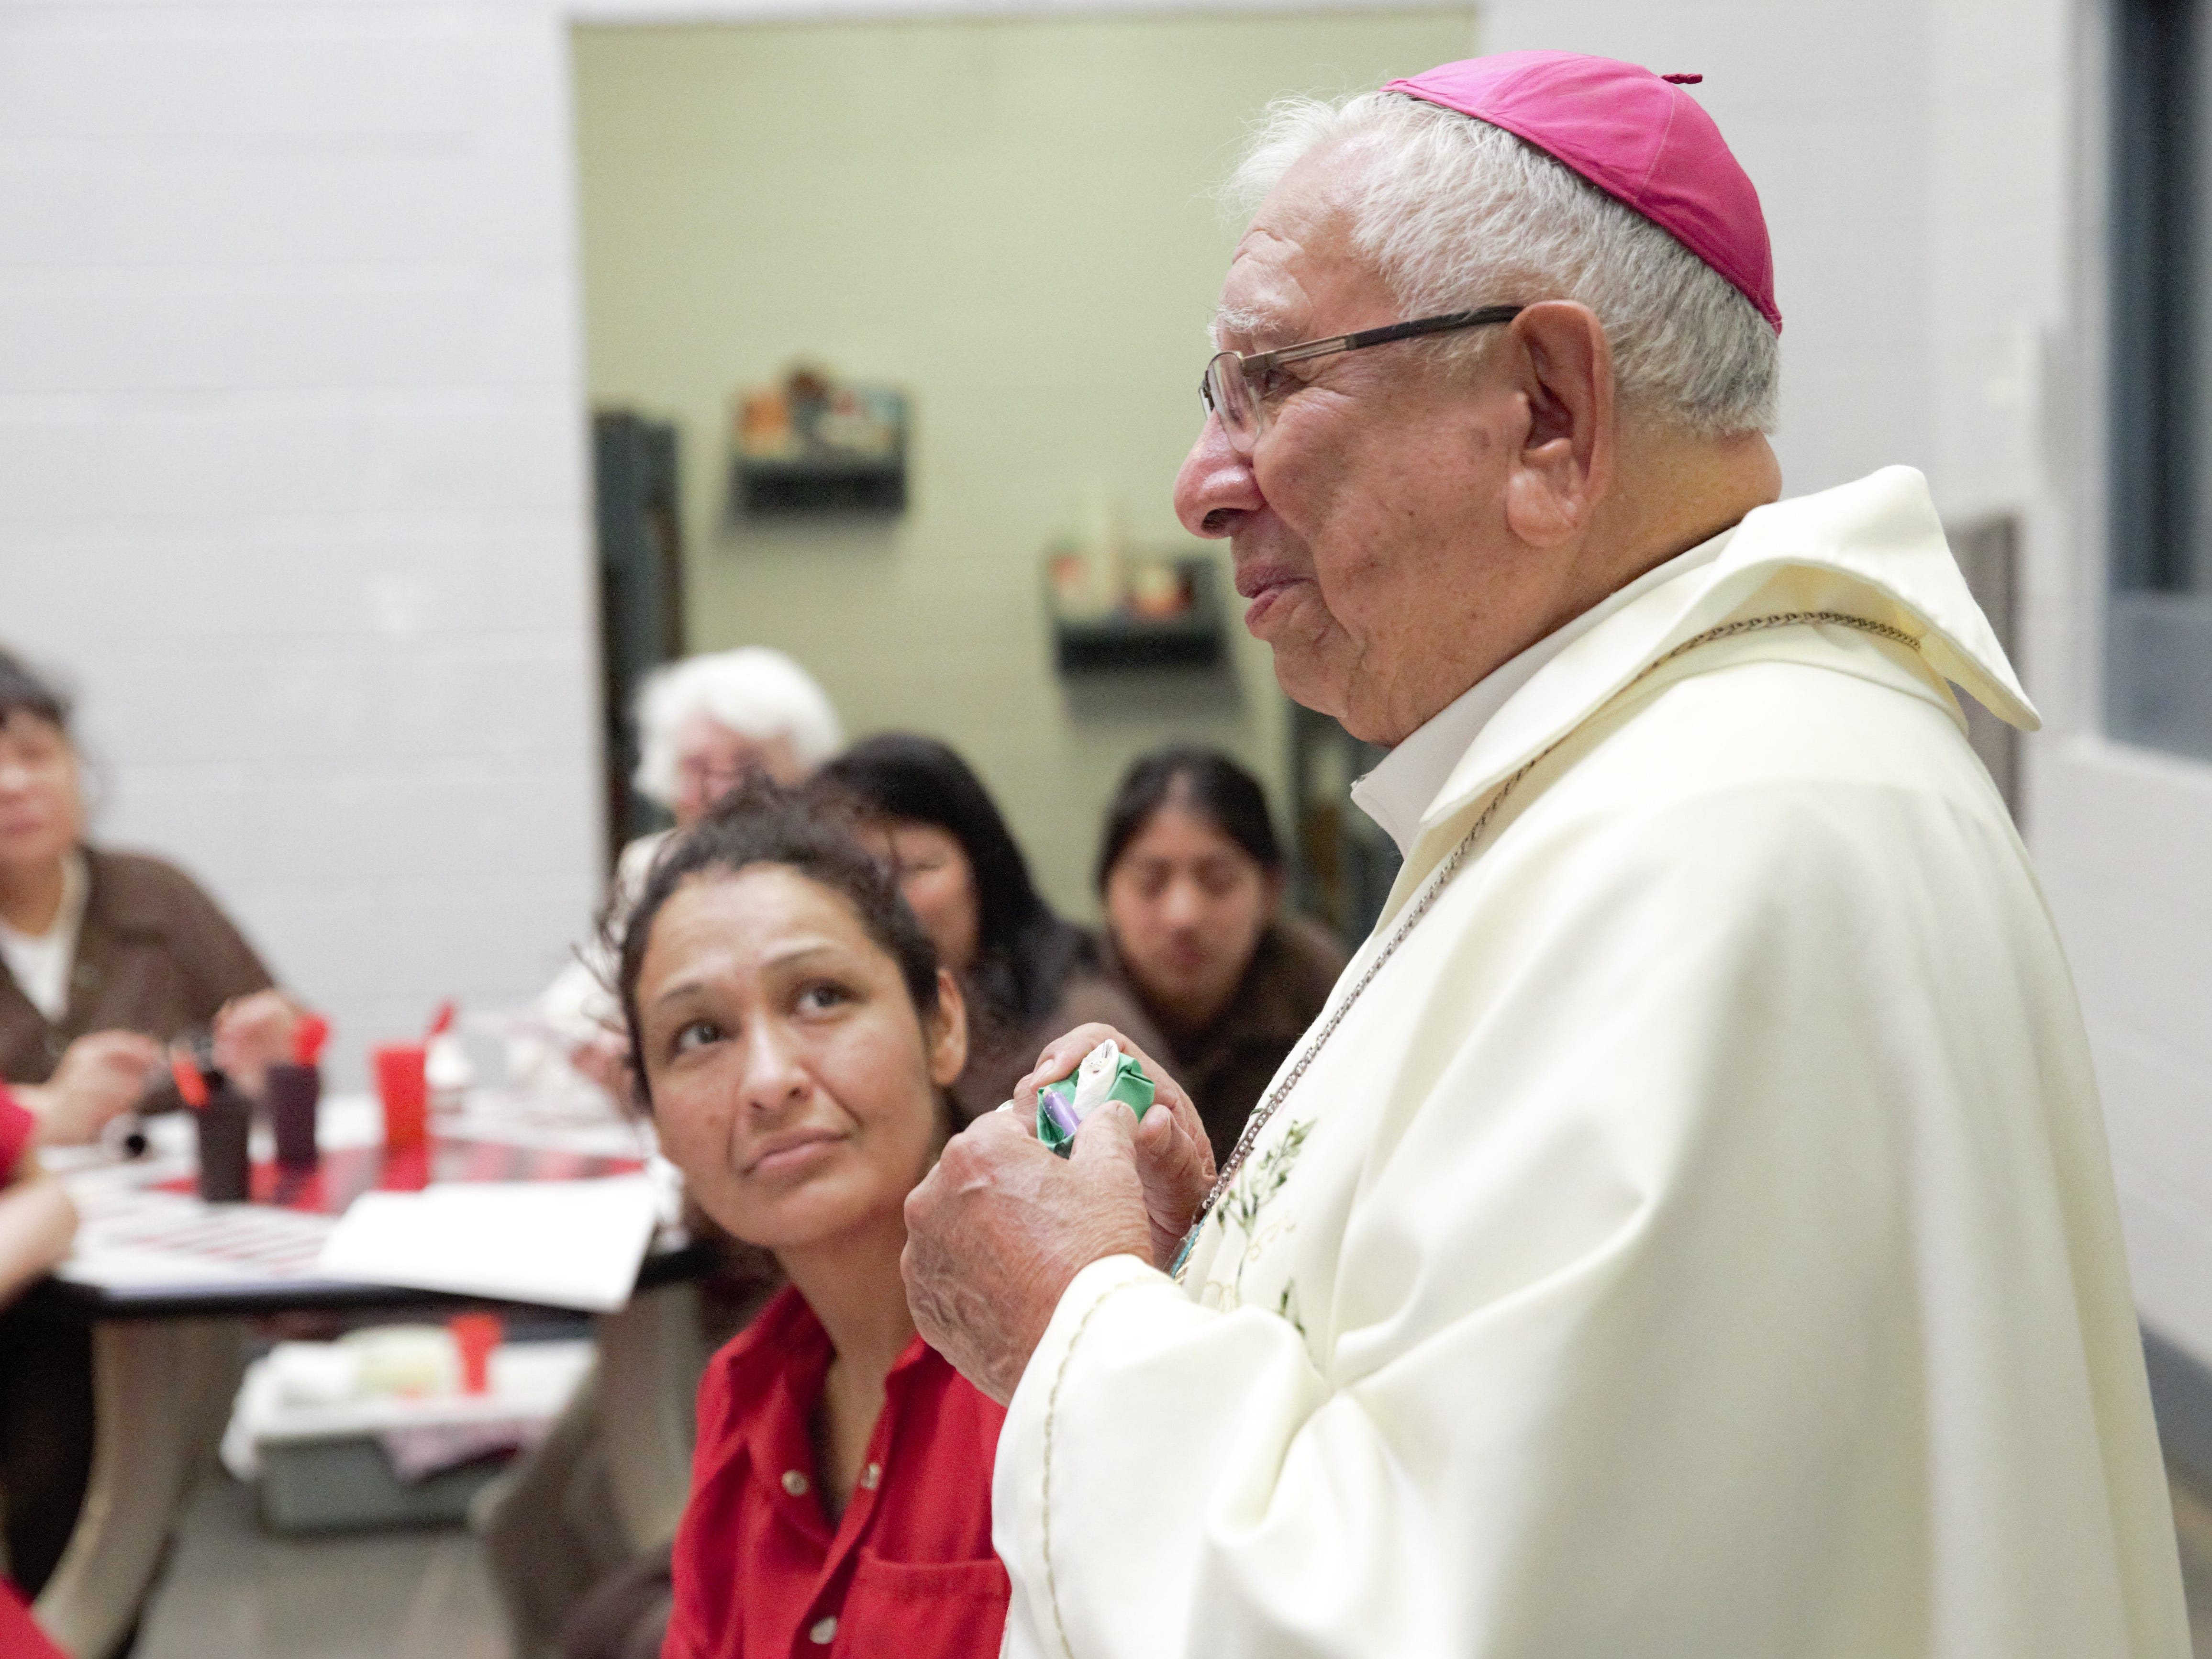 A detainee listens to a Christmas Day address by Bishop Emeritus Ricardo Ramírez on Tuesday, Dec. 25, 2018 in the Doña Ana County Detention Center.